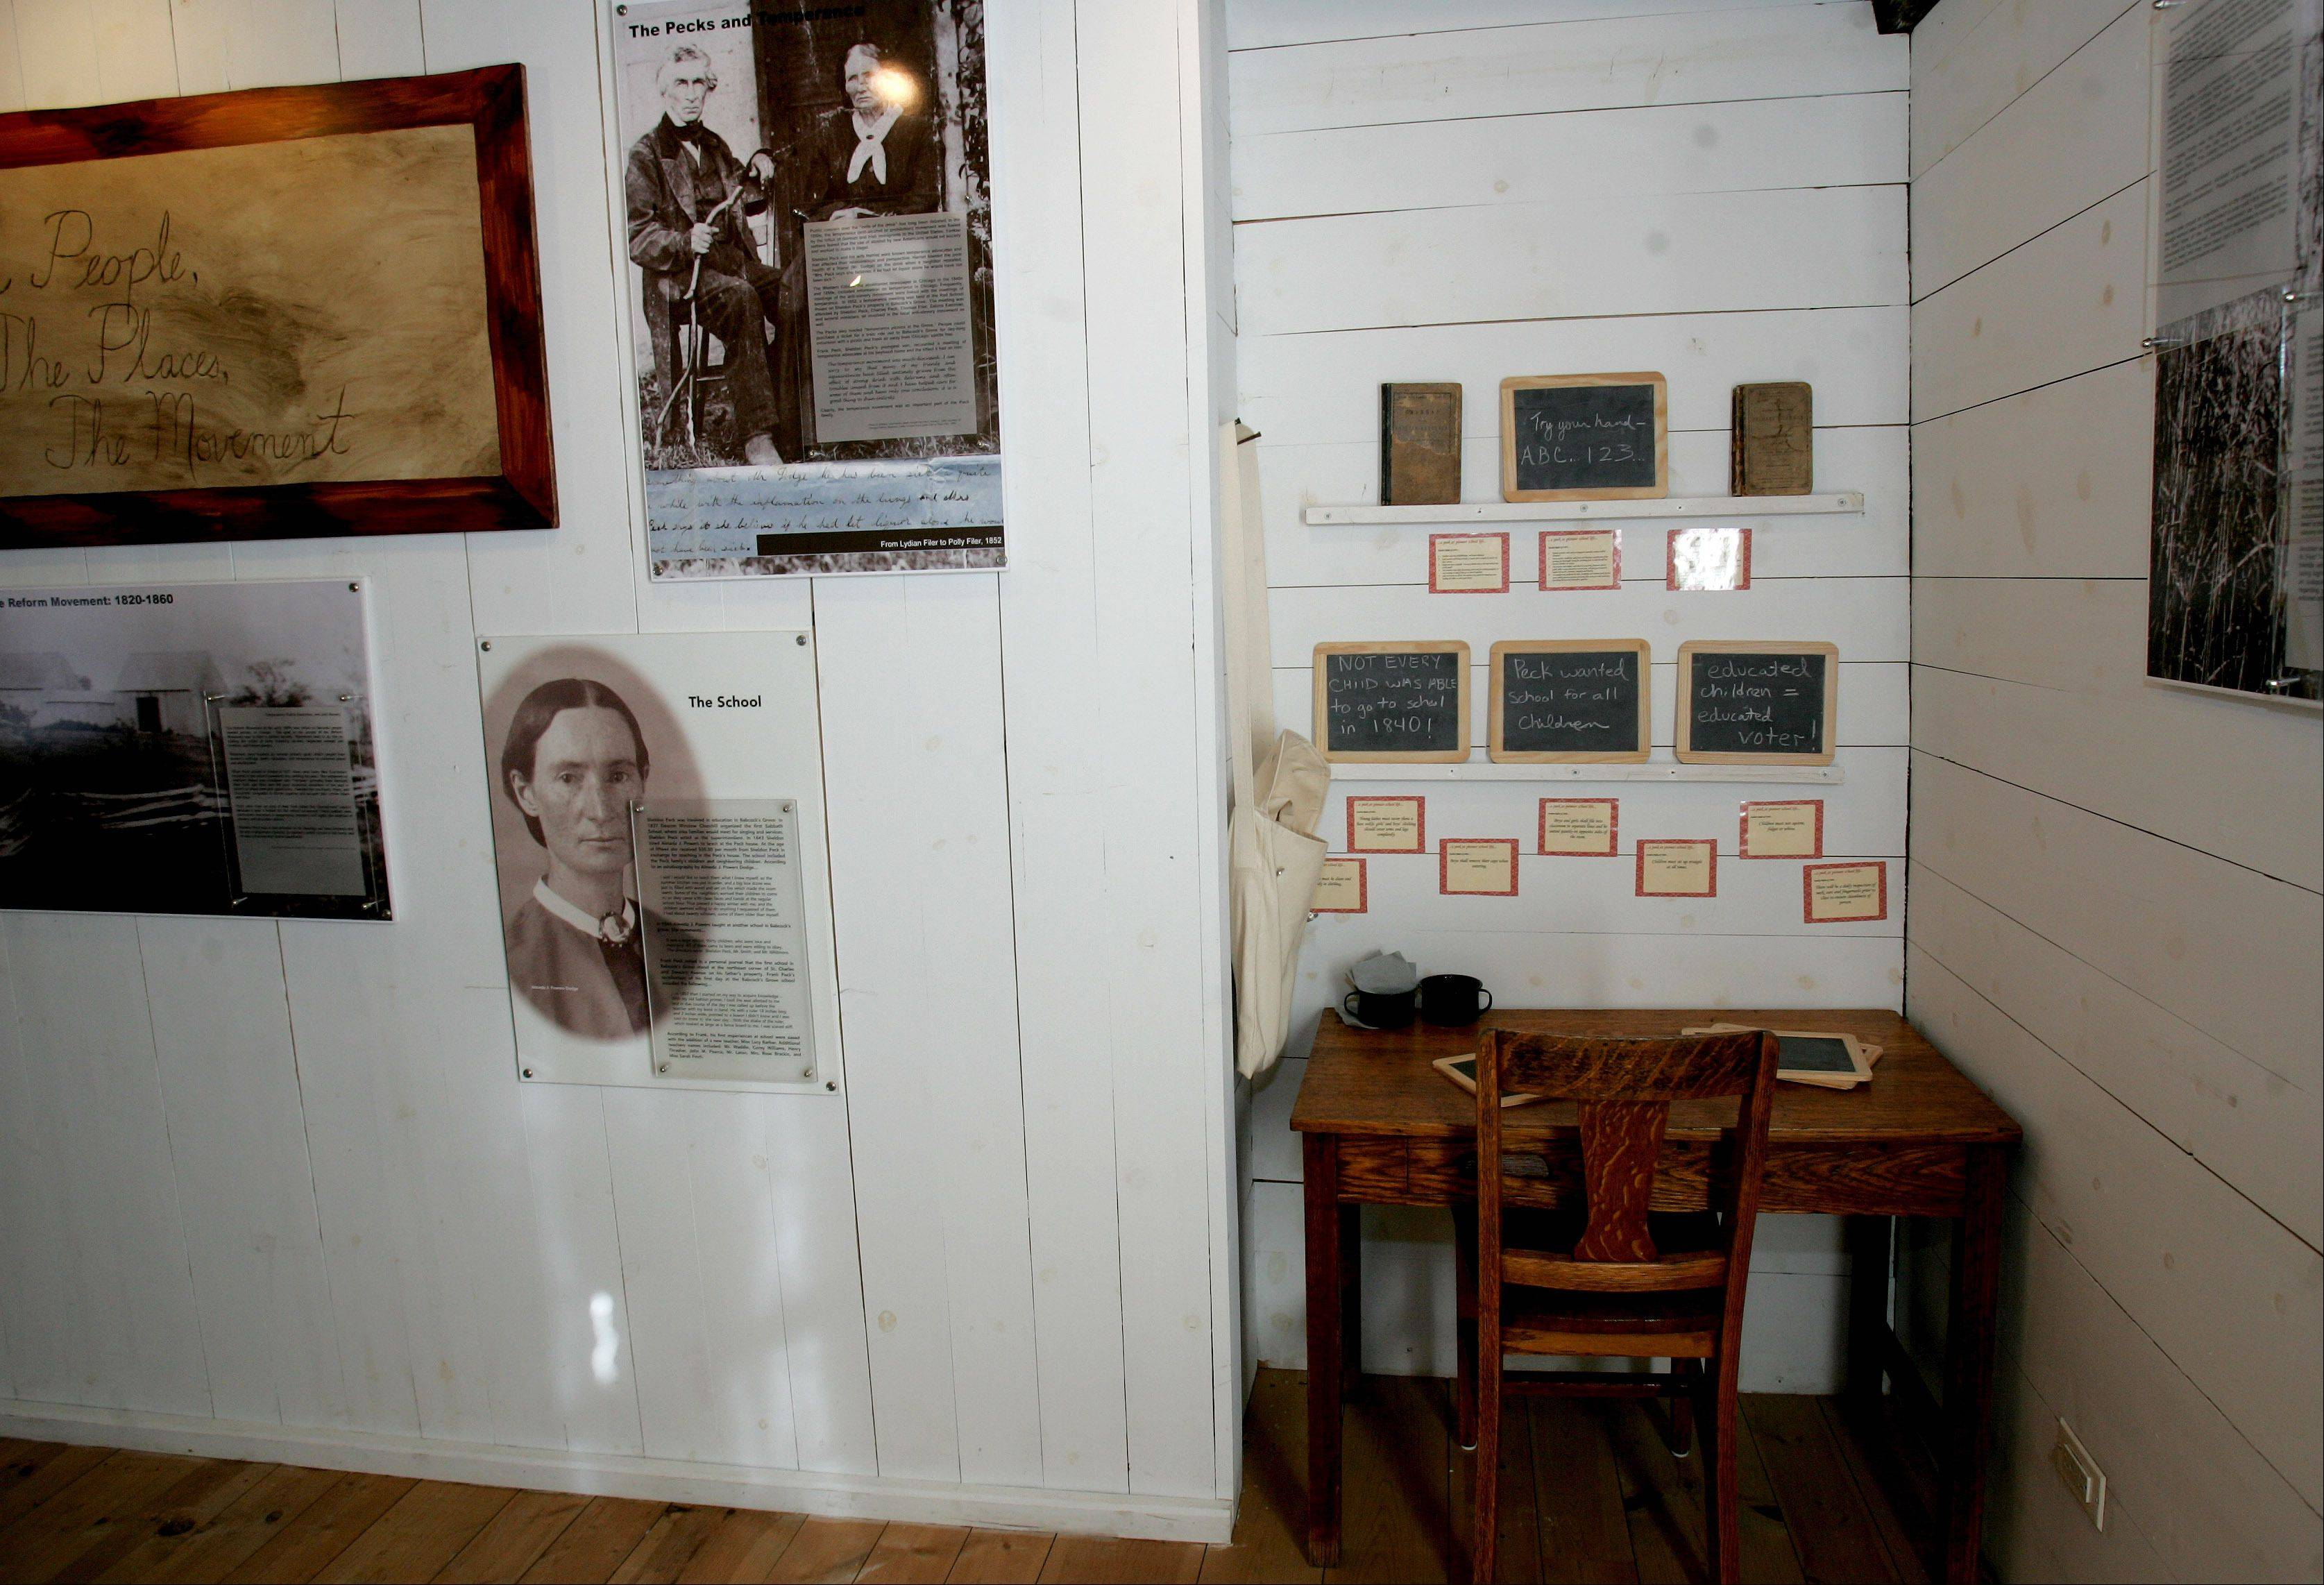 A display on the Underground Railroad takes up one room of the Sheldon Peck Homestead, where the Lombard Historical Society will host a program to mark the 150th anniversary of the Emancipation Proclamation from 1 to 3 p.m. Tuesday.